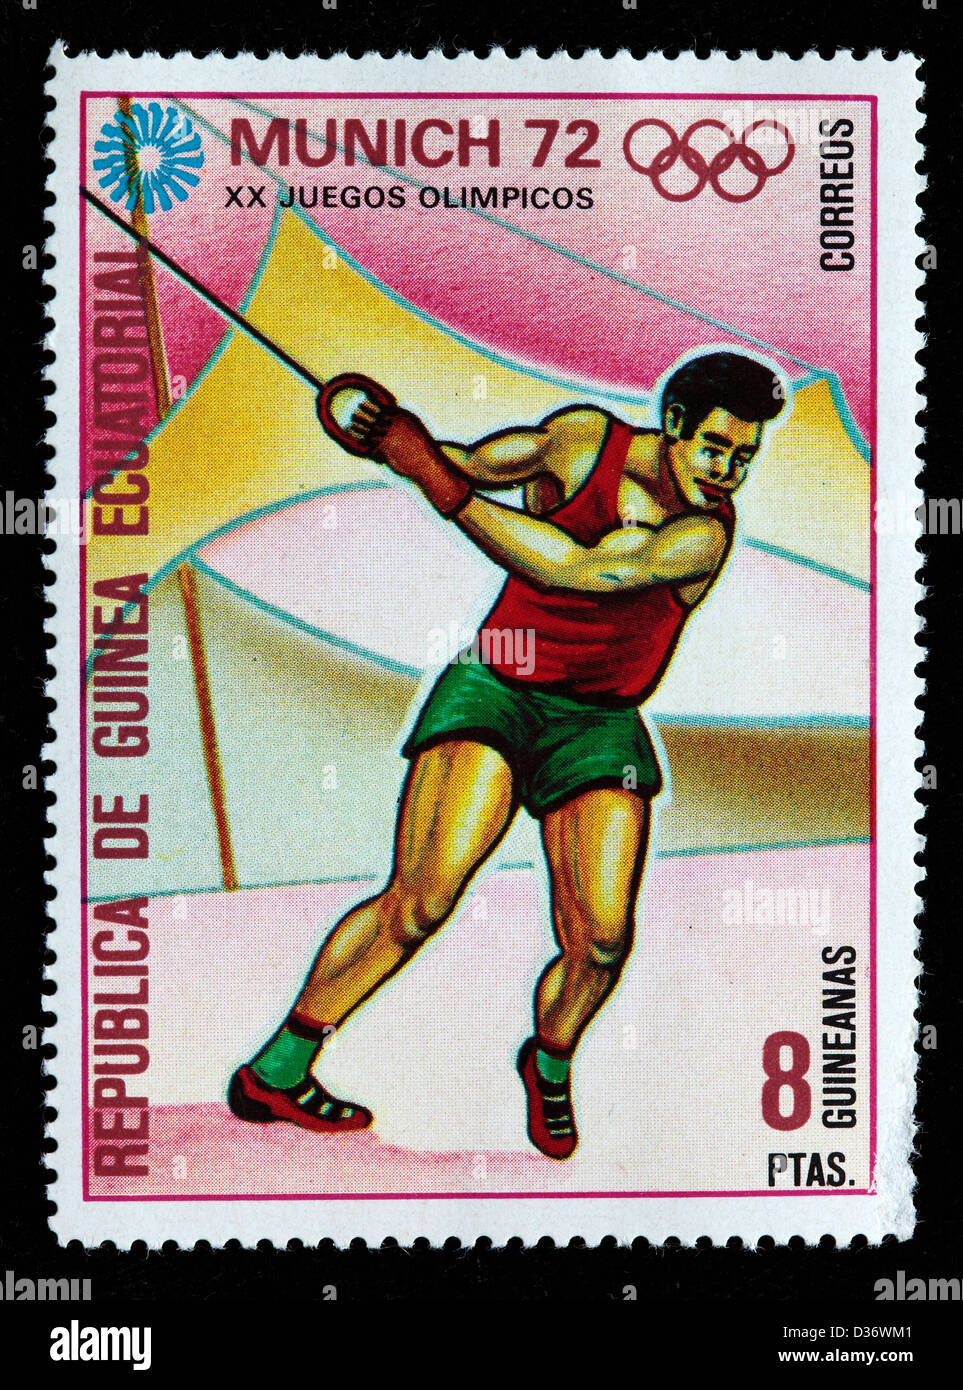 Olympic games in Munich, postage stamp, Equatorial Guinea, 1972 - Stock Image